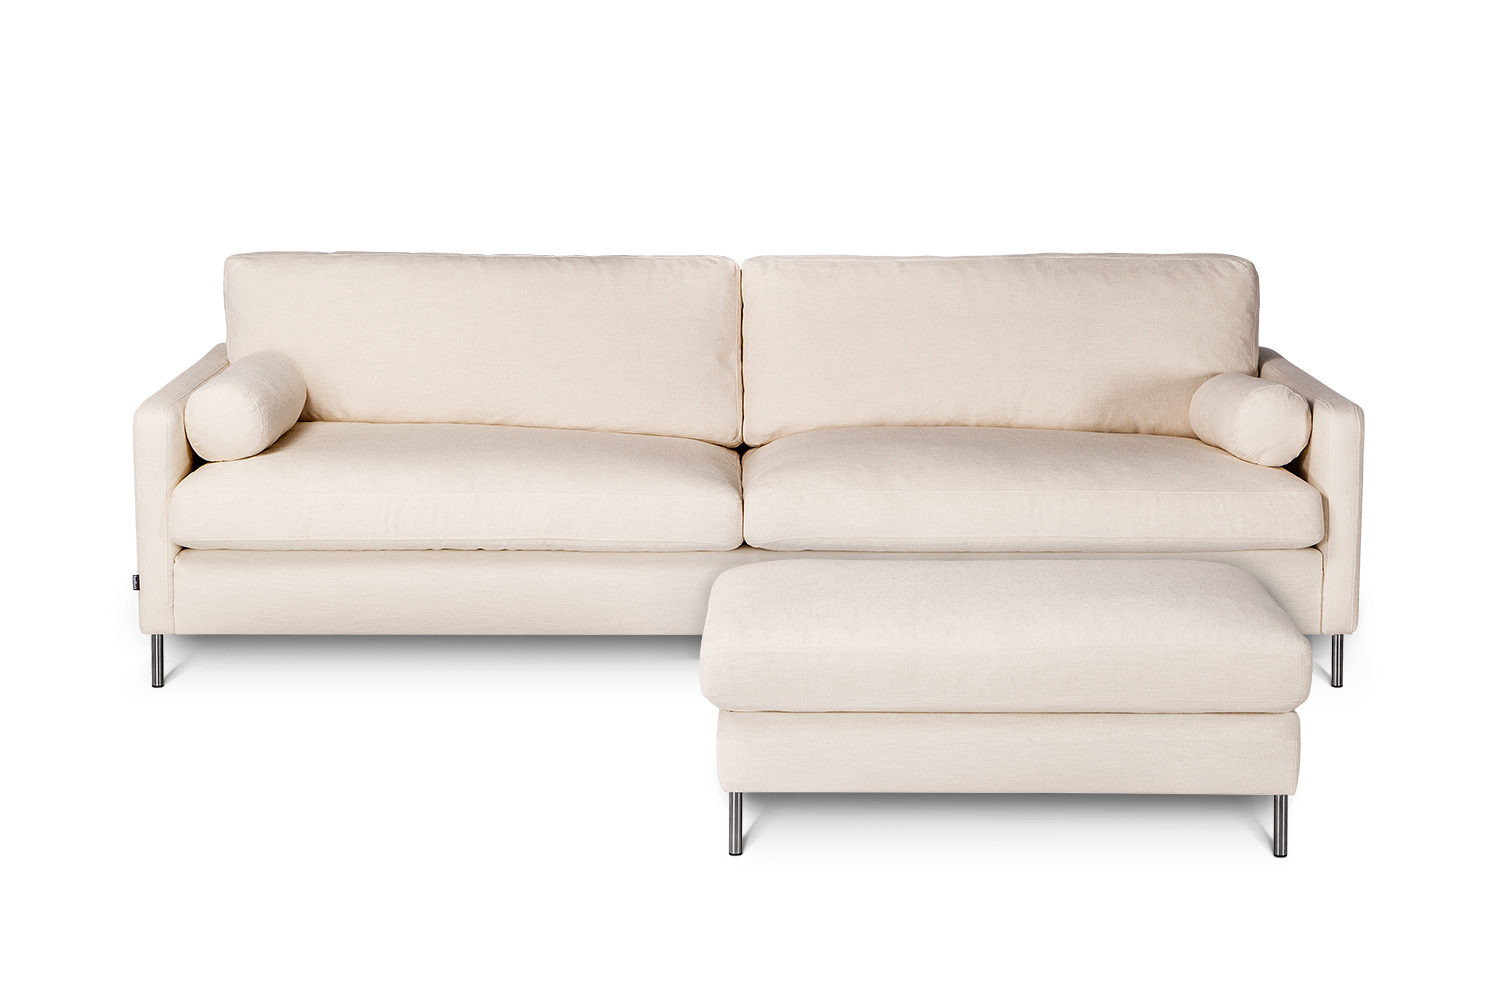 In picture: Colorado 4 with footstool. Fabric: Bronco 5208. Leg 48, stainless steel.